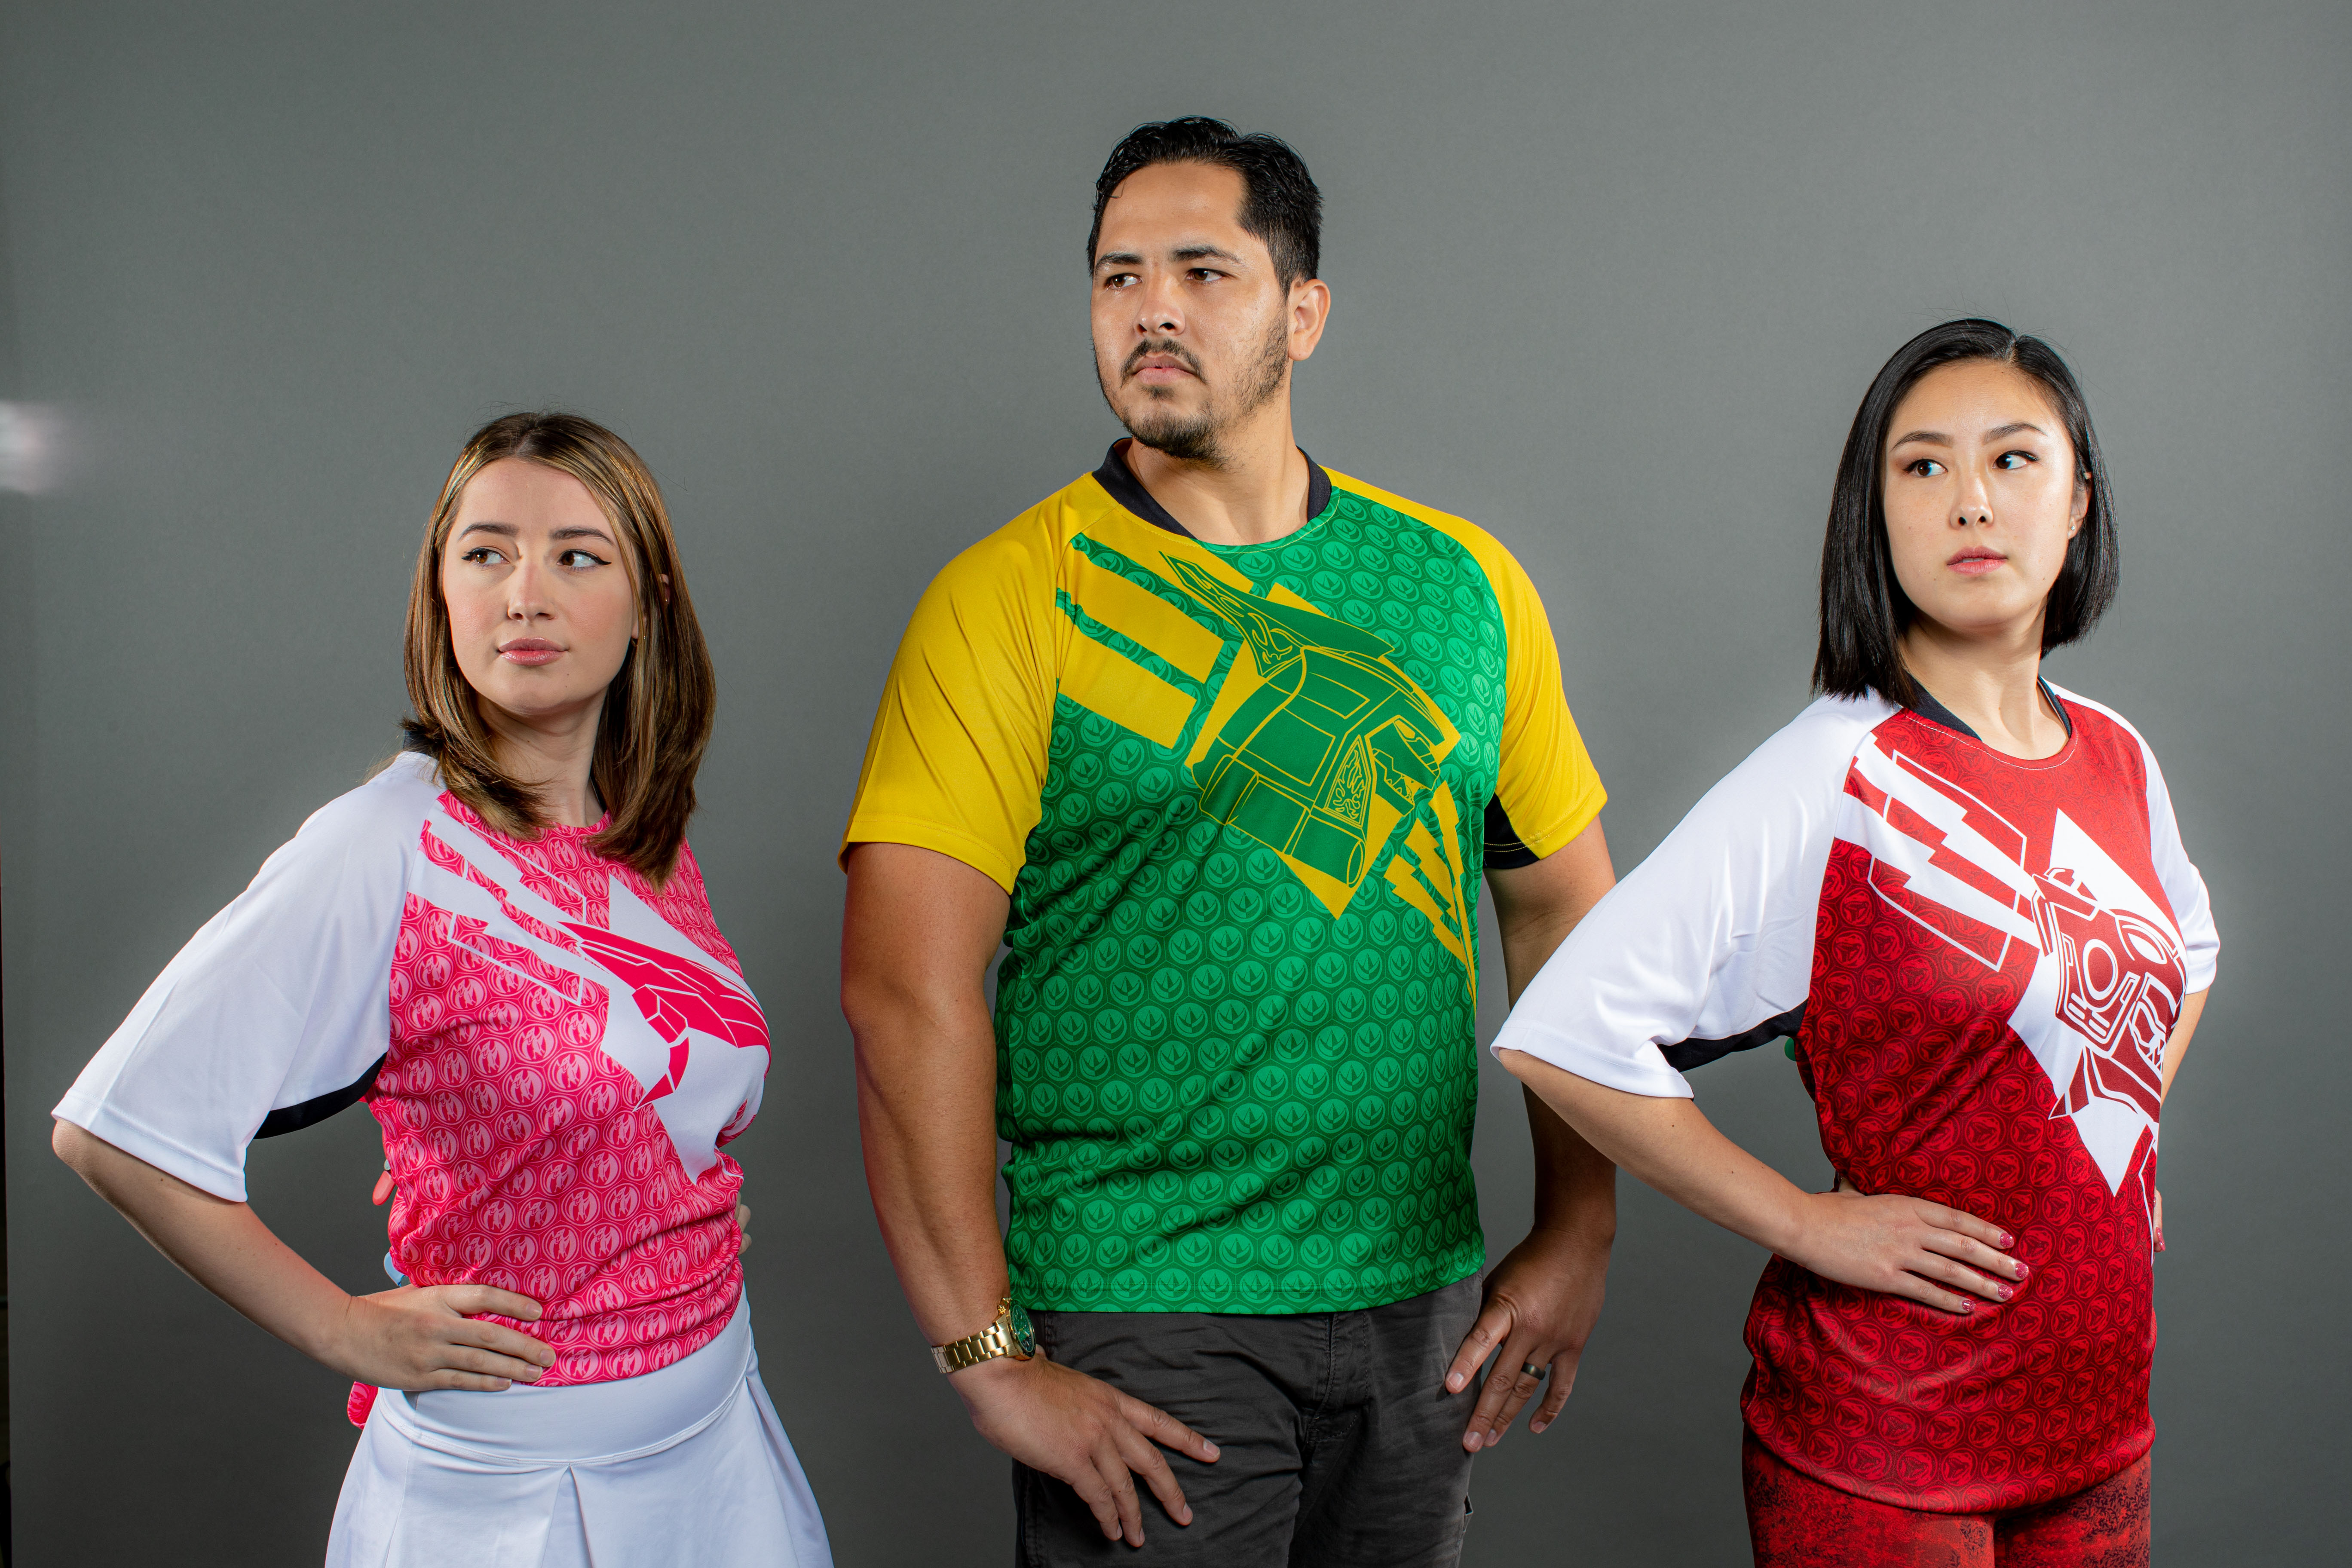 Exclusive First Look - Power Rangers cosPLAY from Loot Crate